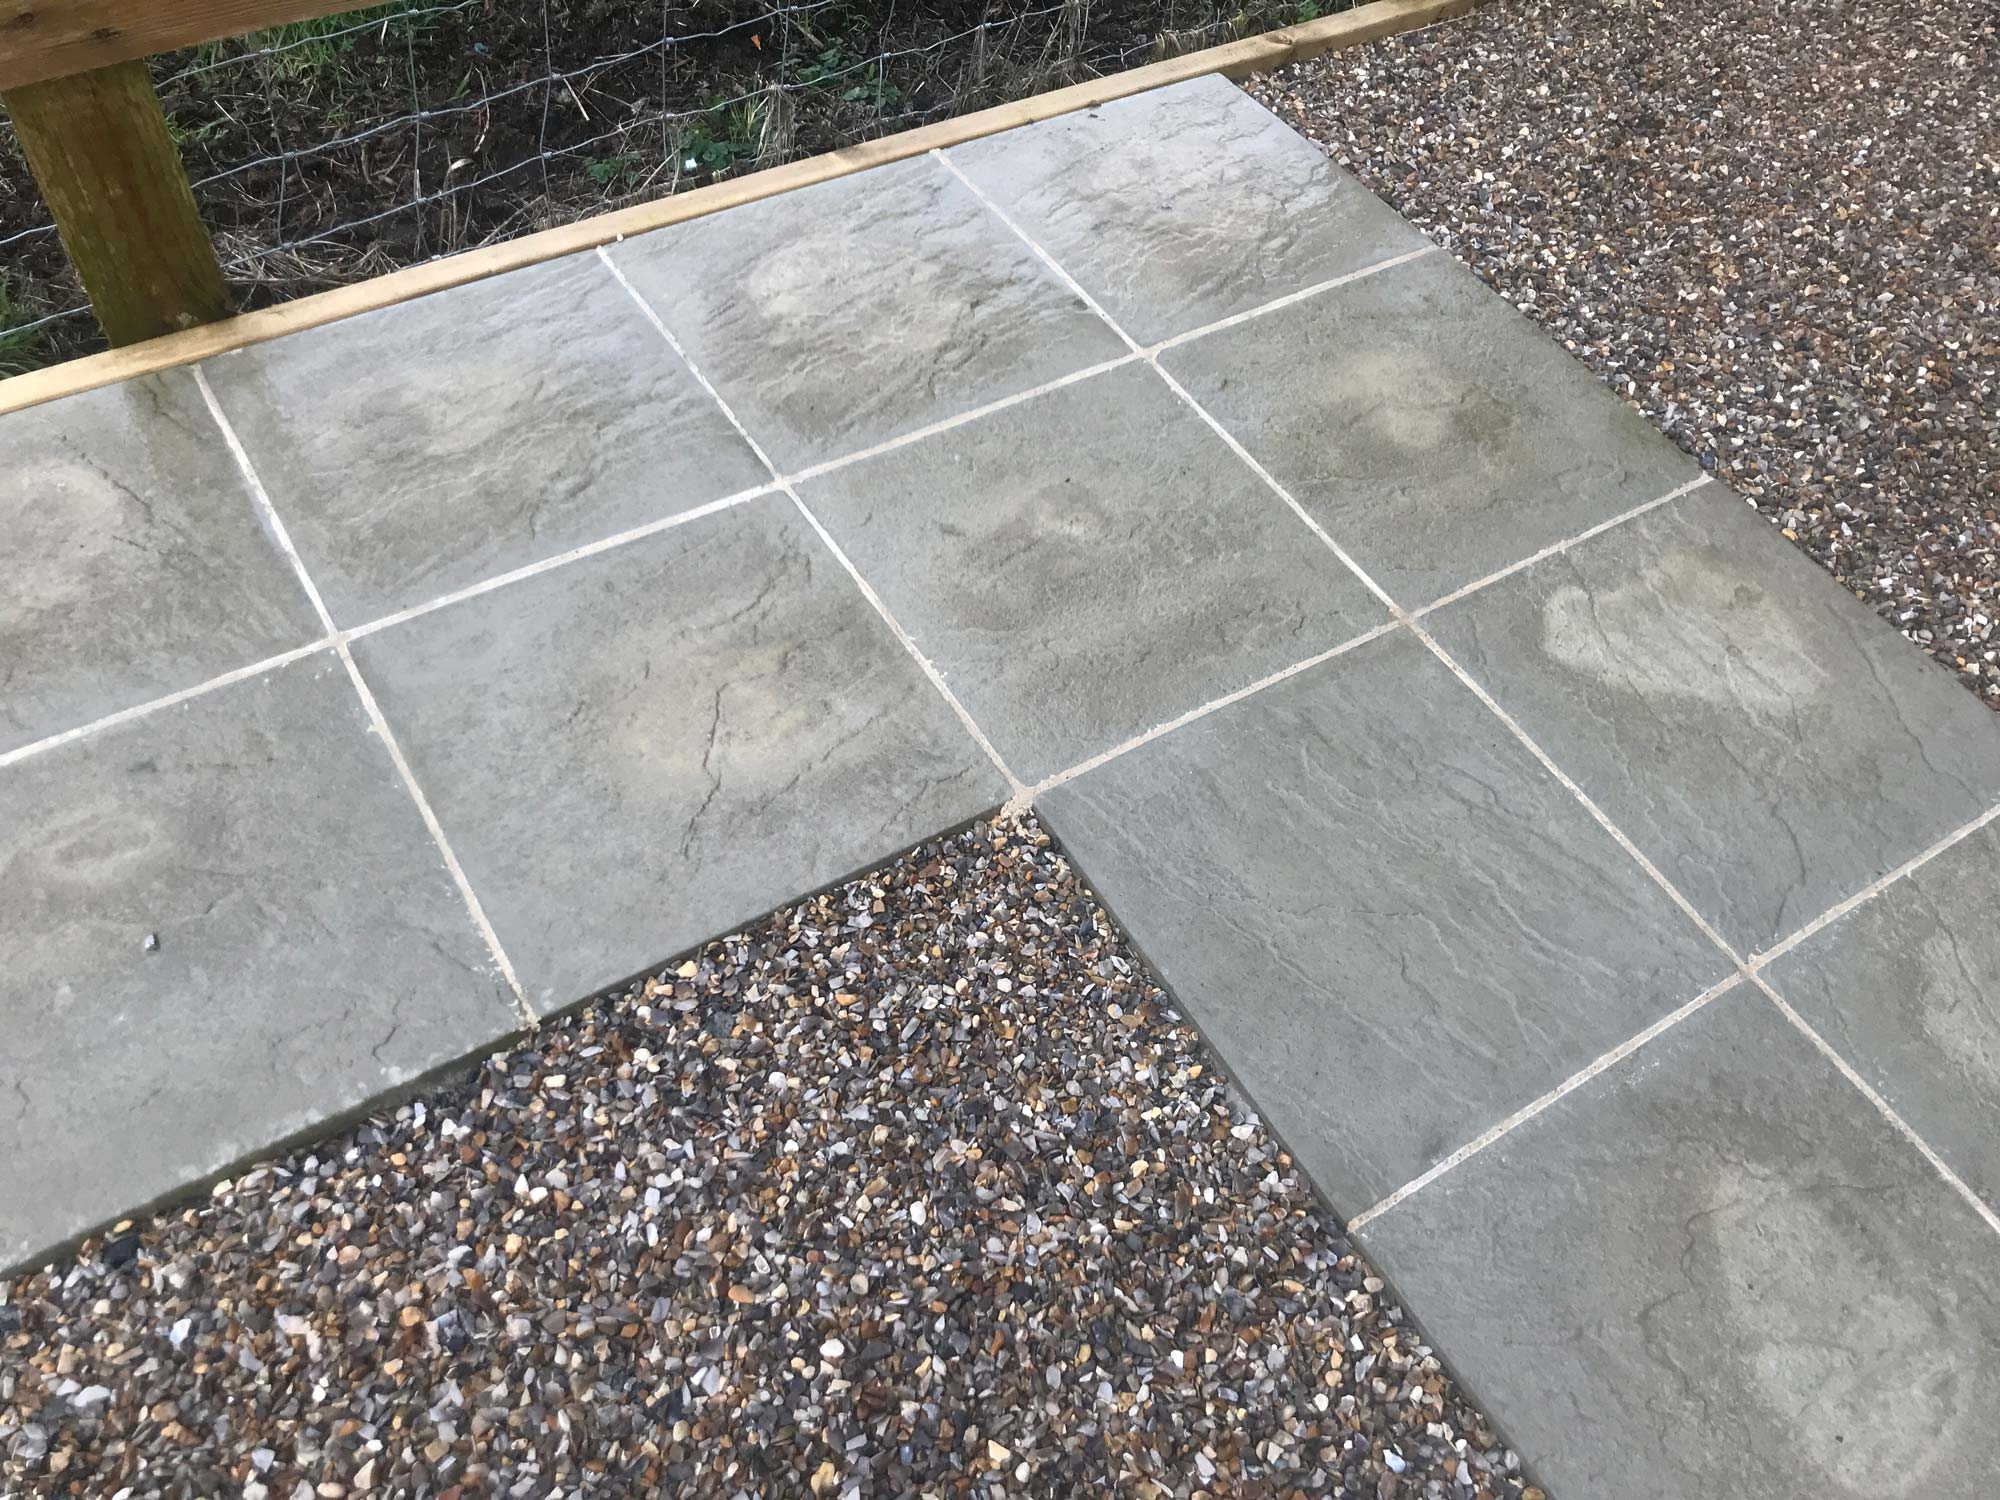 Simple paving slabs and gravel form a cost-effective but practical and attractive seating area